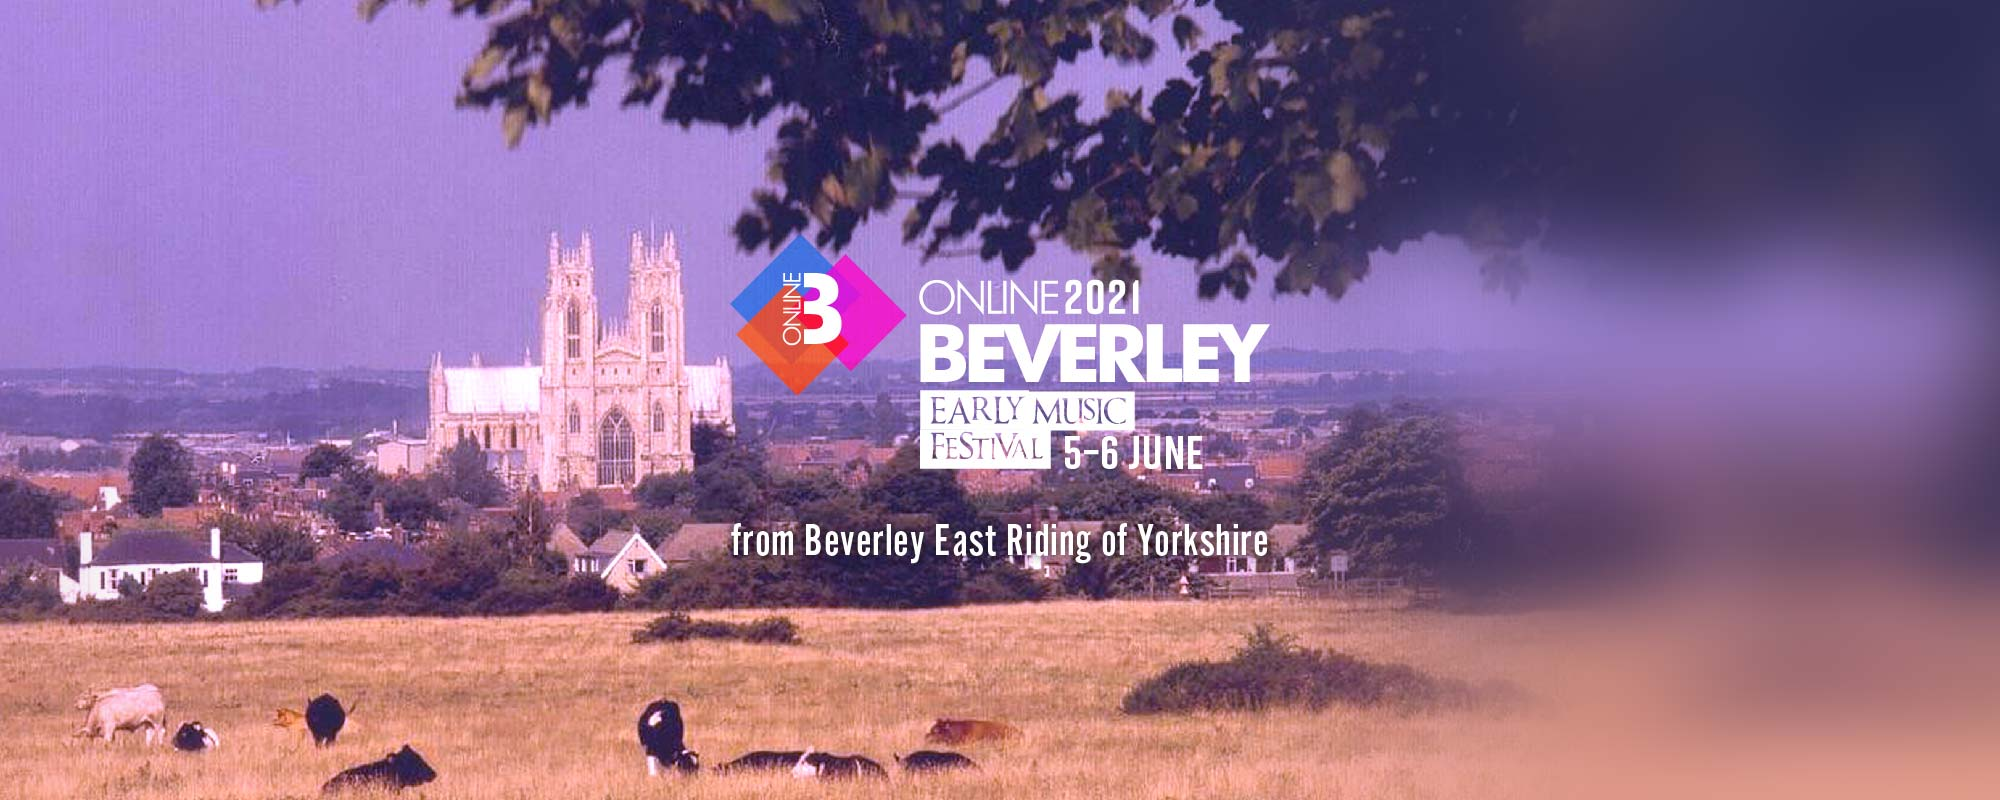 Online Beverley Early Music Festival 2021